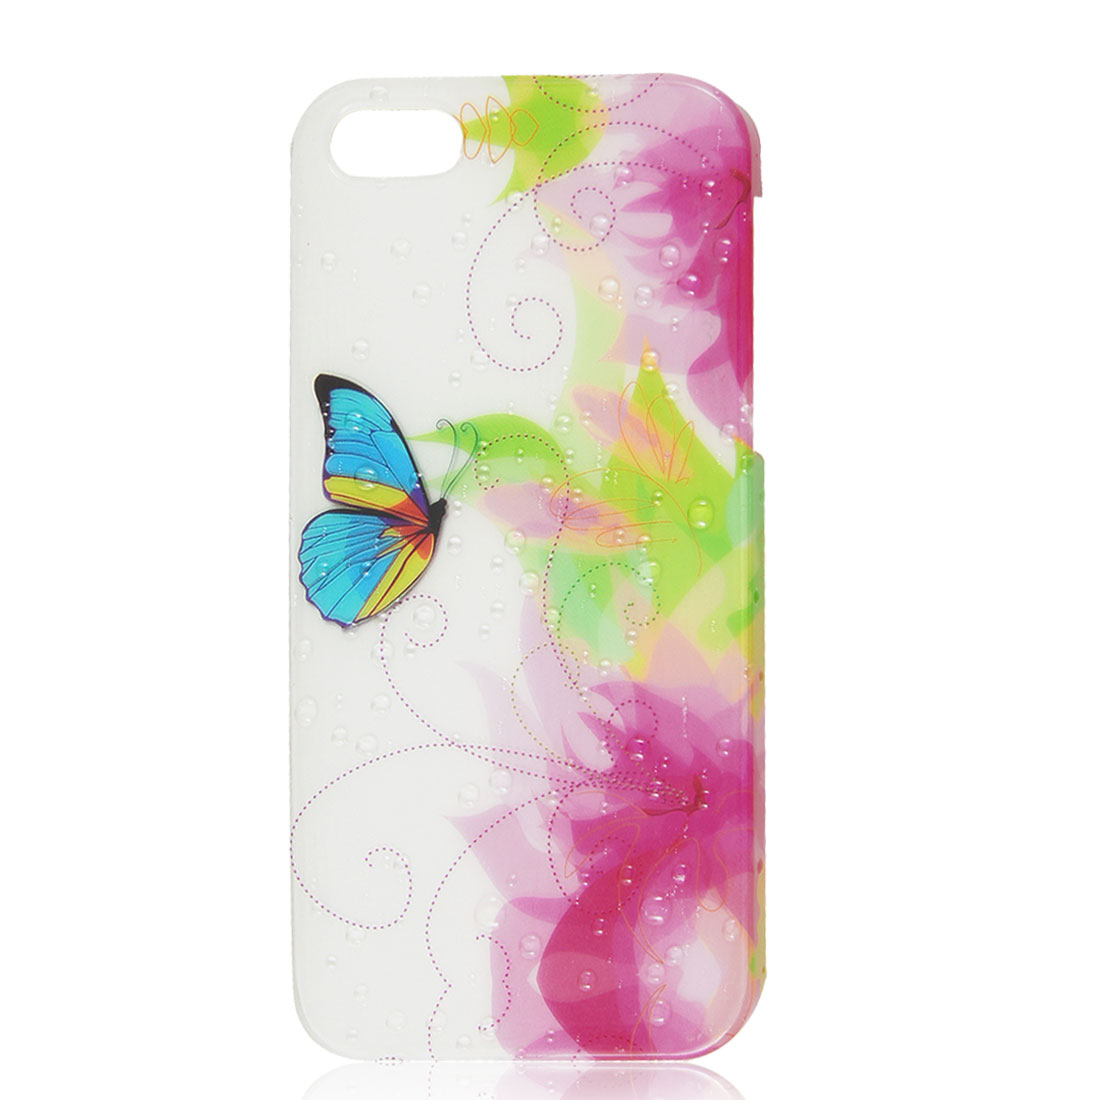 Fuchsia White Floral Butterfly 3D Waterdrop Hard Back Case Cover for iPhone 5 5G